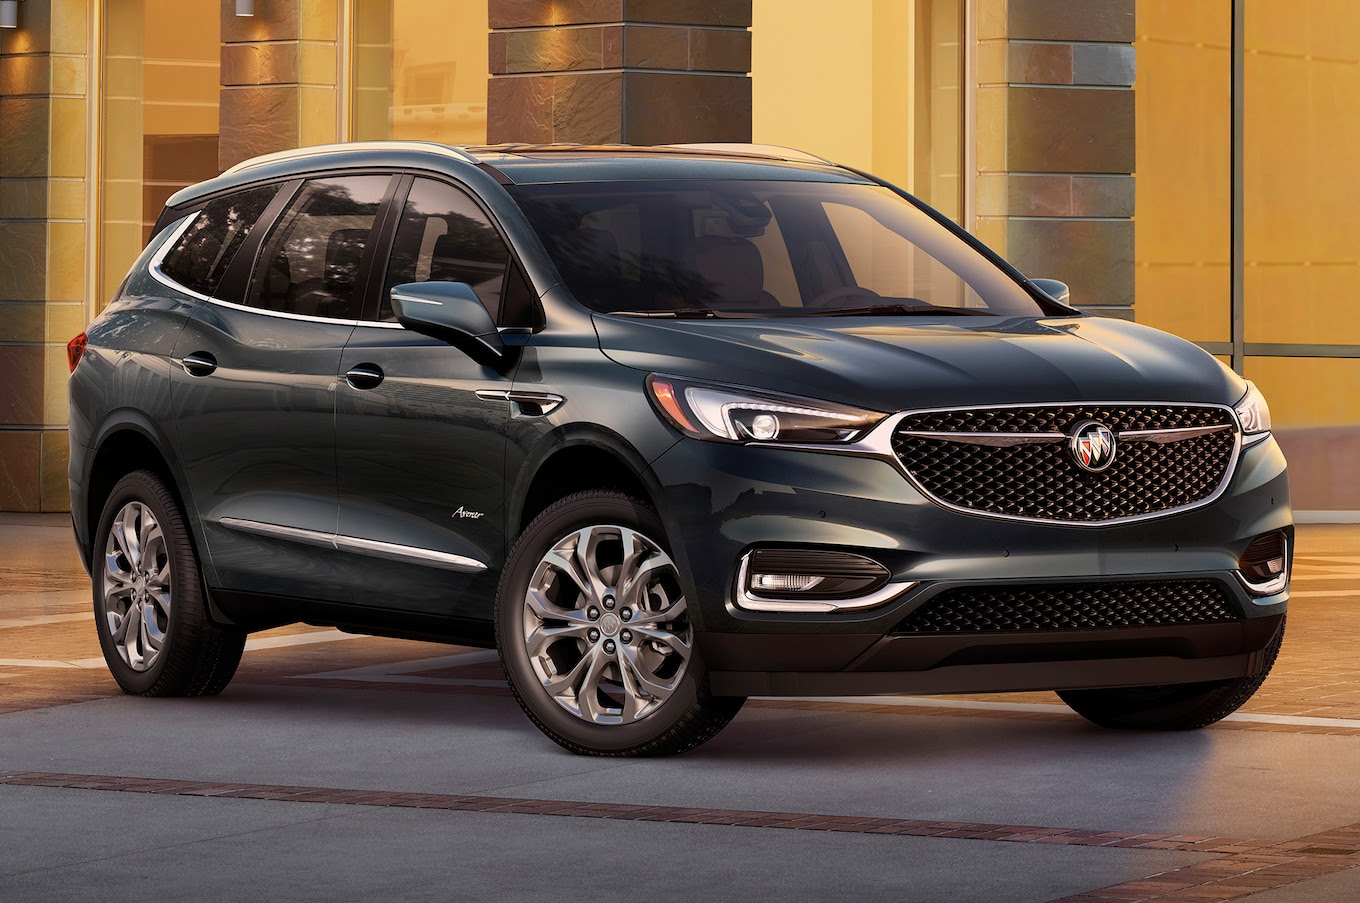 2018 Buick Enclave Reviews and Rating | Motor Trend